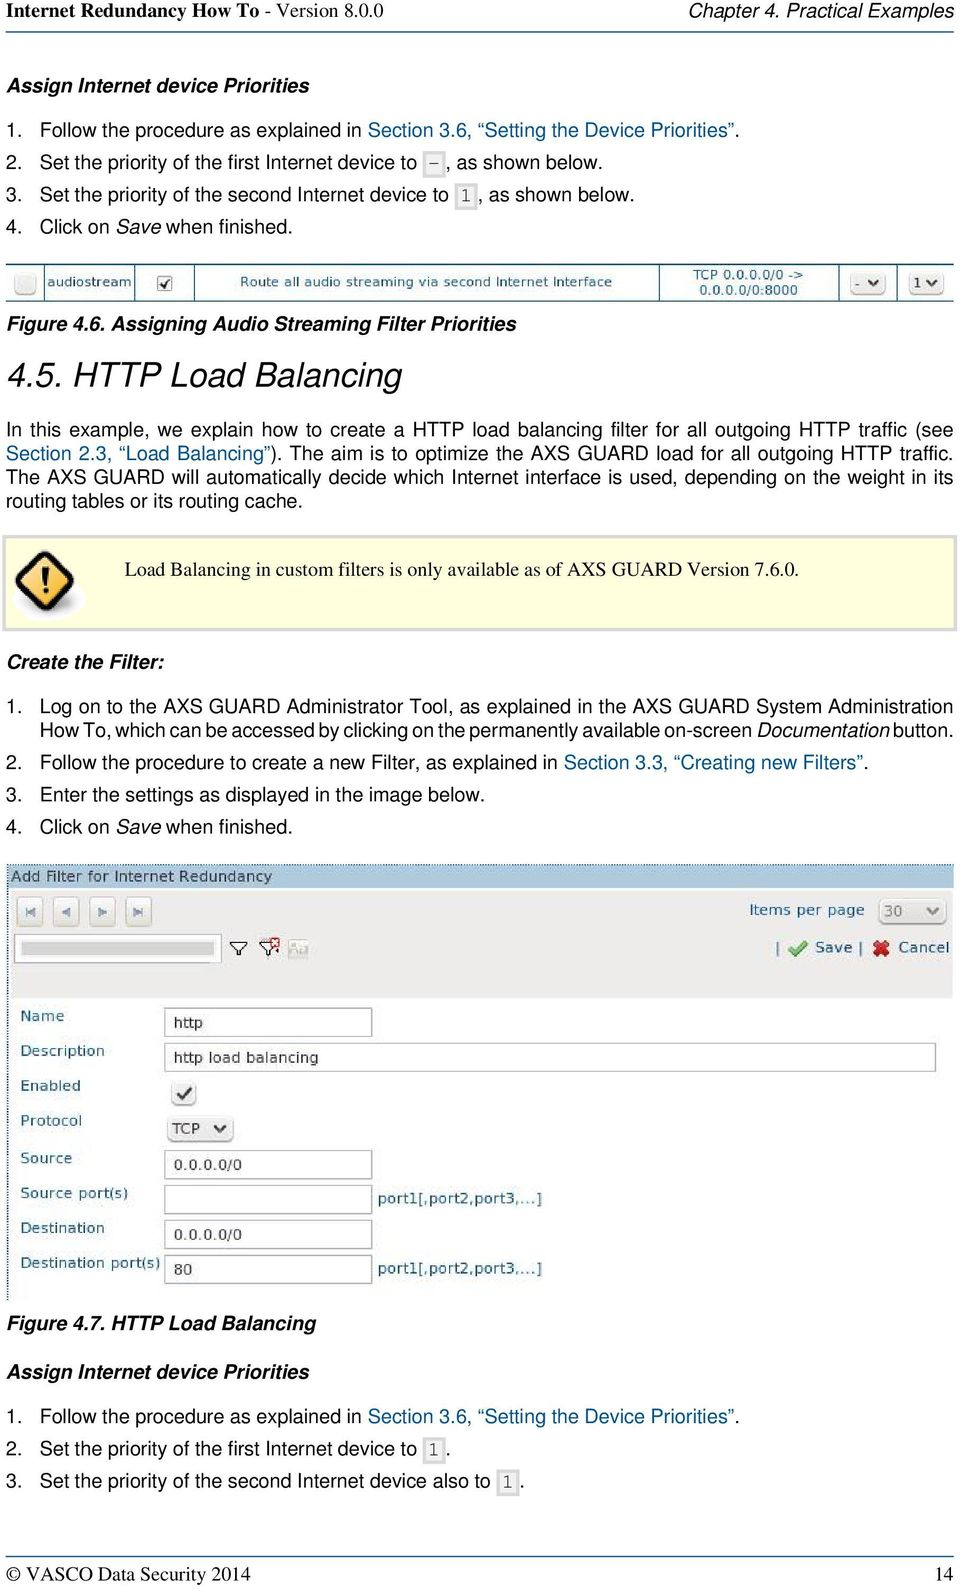 Assigning Audio Streaming Filter Priorities 4.5. HTTP Load Balancing In this example, we explain how to create a HTTP load balancing filter for all outgoing HTTP traffic (see Section 2.